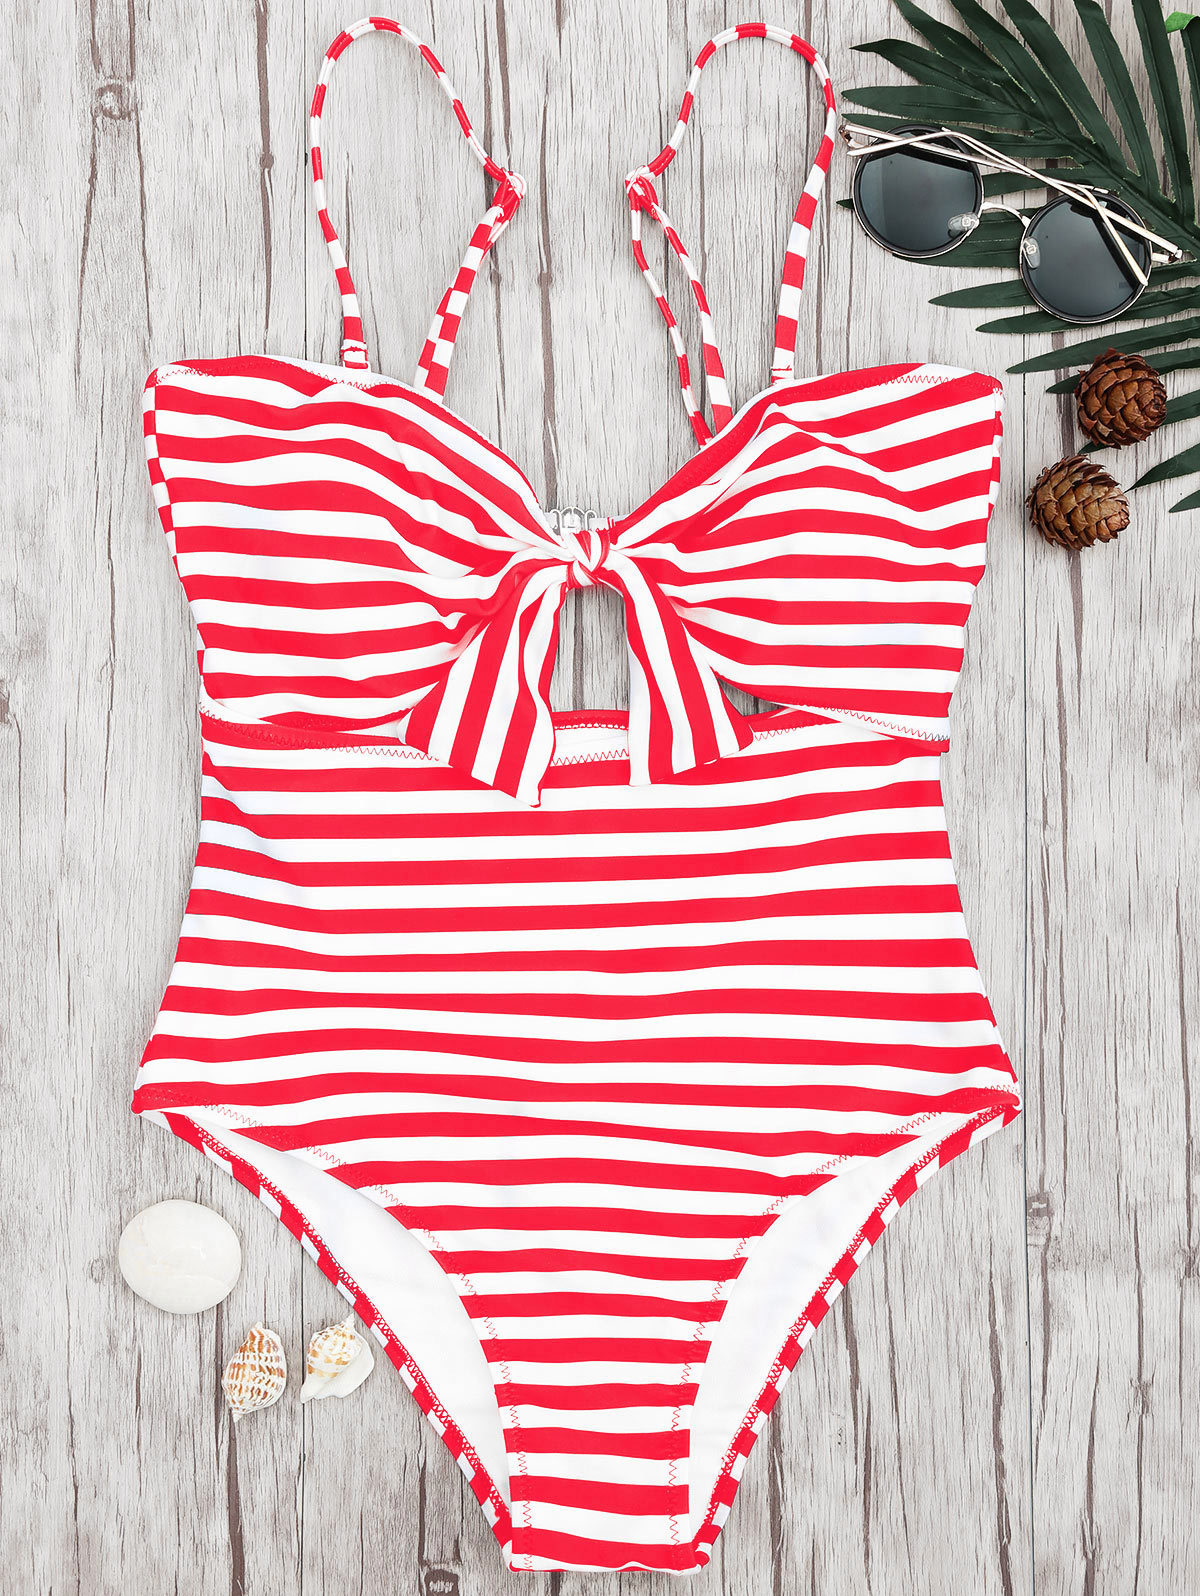 Polyester Fashion  Bikini  (Bow black and white strip -S)  Swimwear NHHL1111-Bow-black-and-white-strip-S